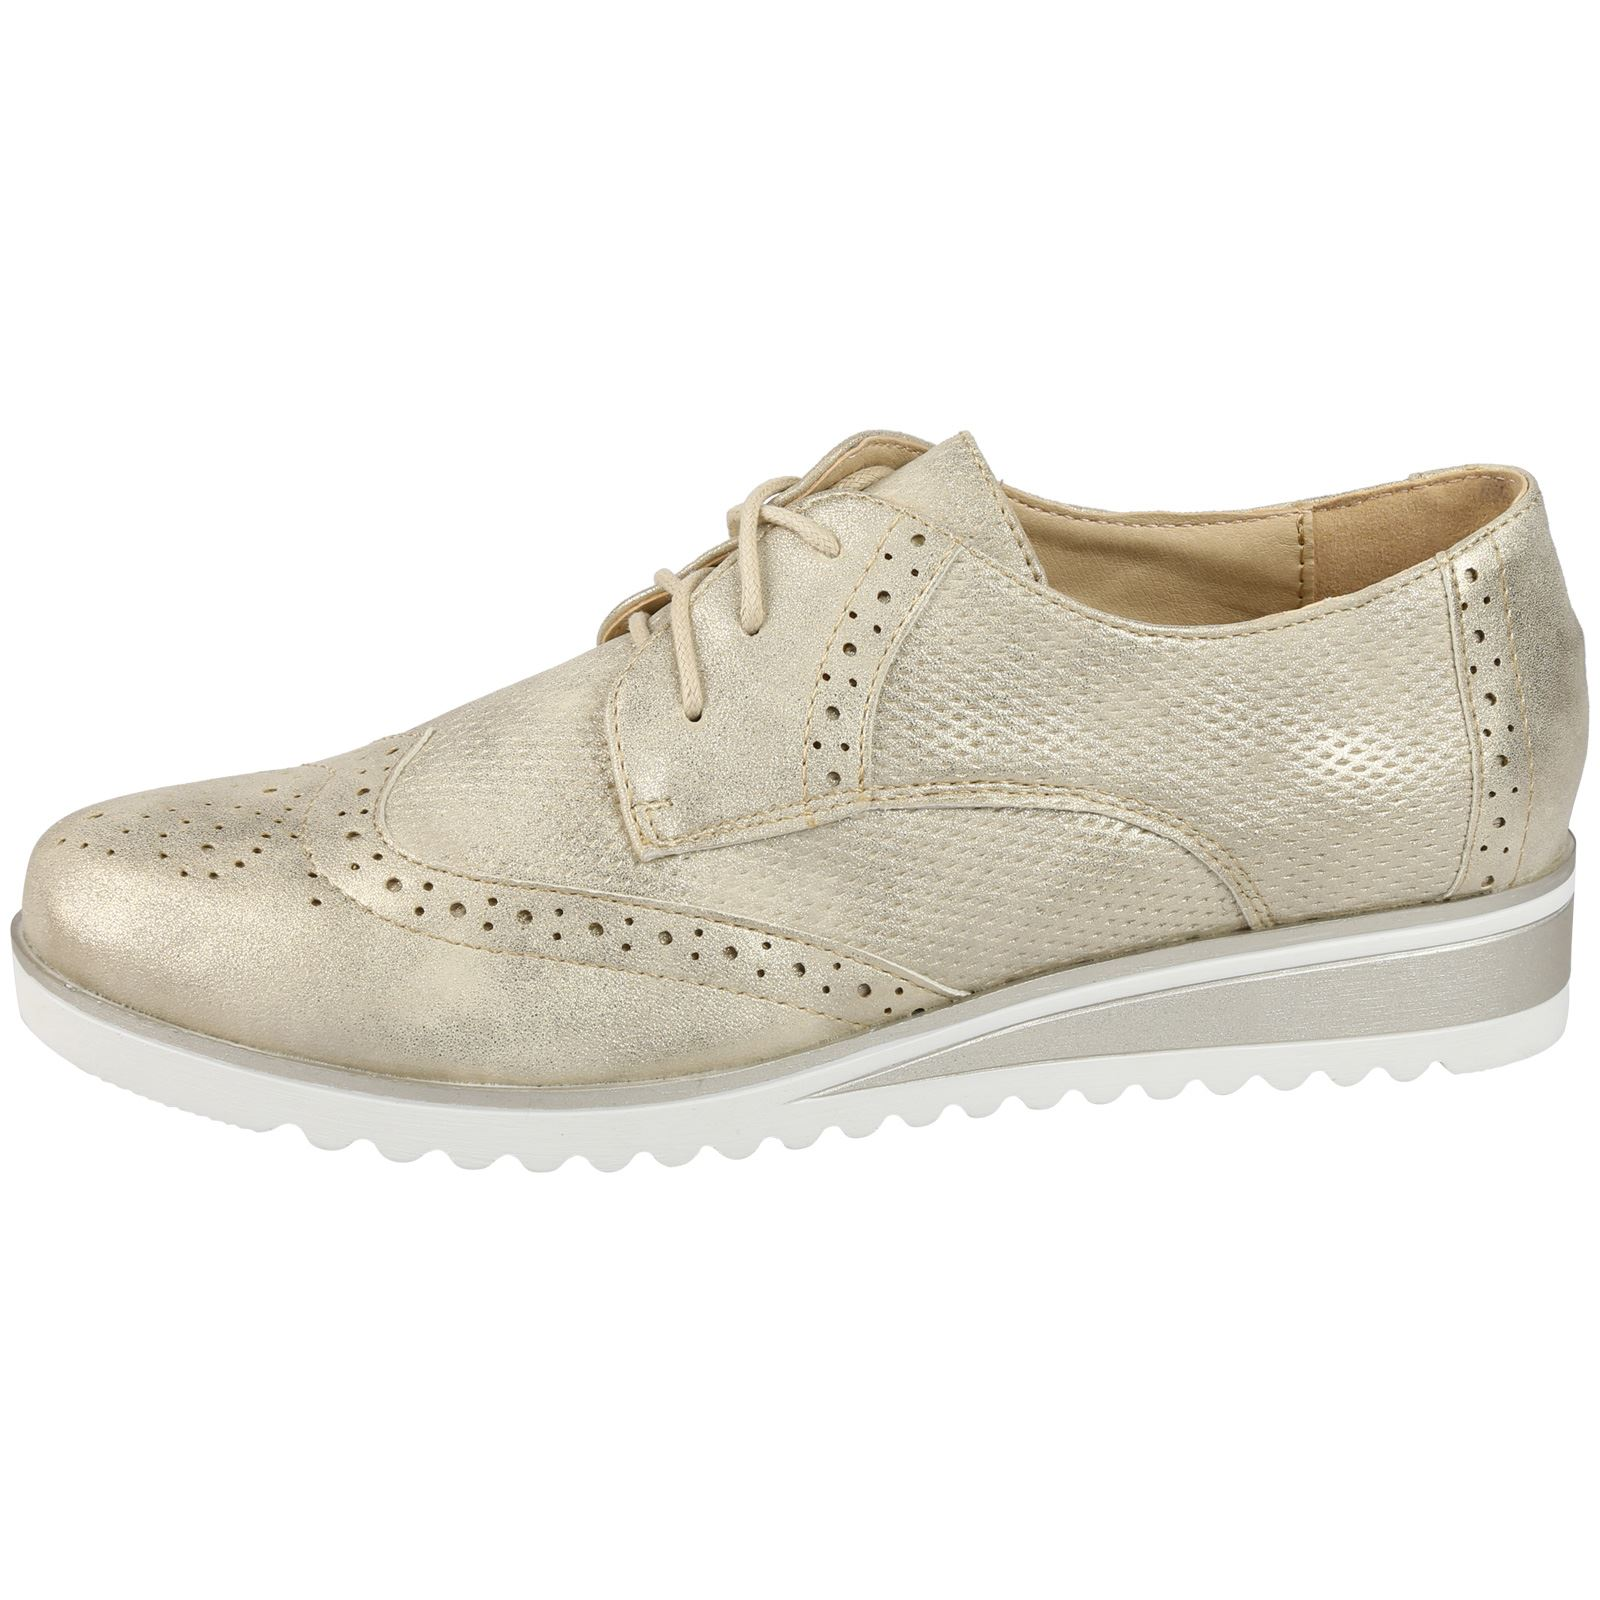 Find womens metallic brogues at ShopStyle. Shop the latest collection of womens metallic brogues from the most popular stores - all in one place.